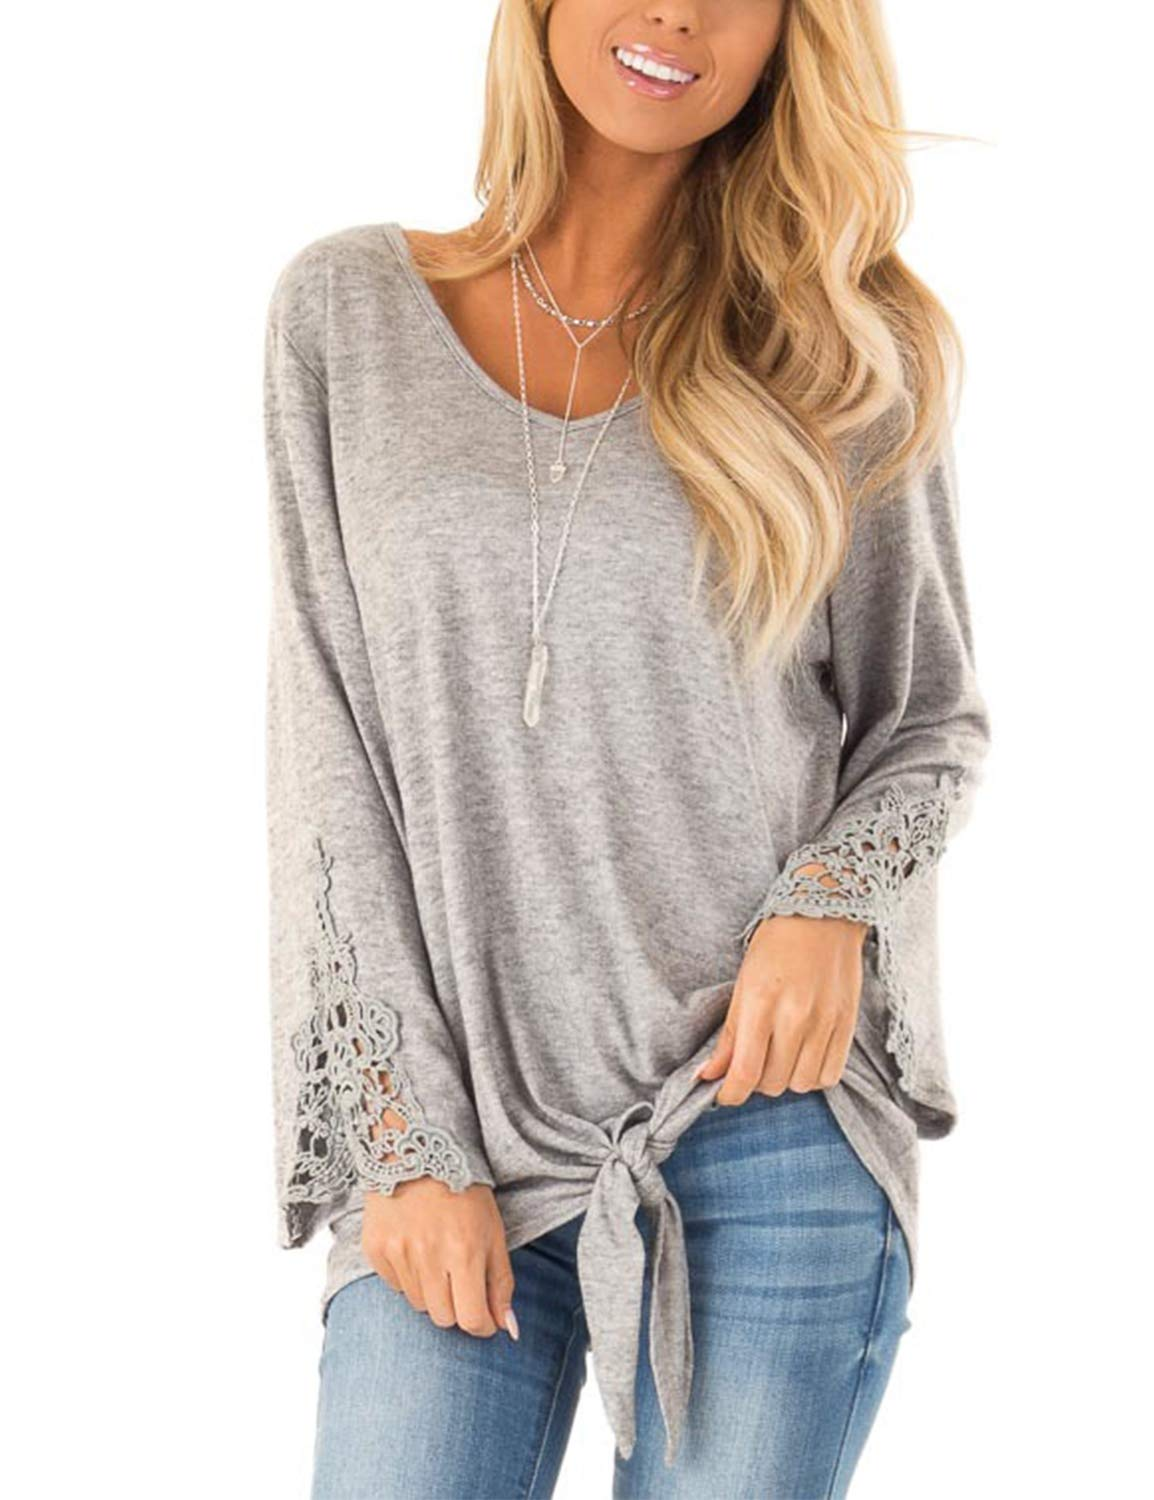 Blooming Jelly Women's Casual Crochet Lace Tie Knot Shirt Long Sleeve V Neck Knotted Top T Shirt(S, Grey)